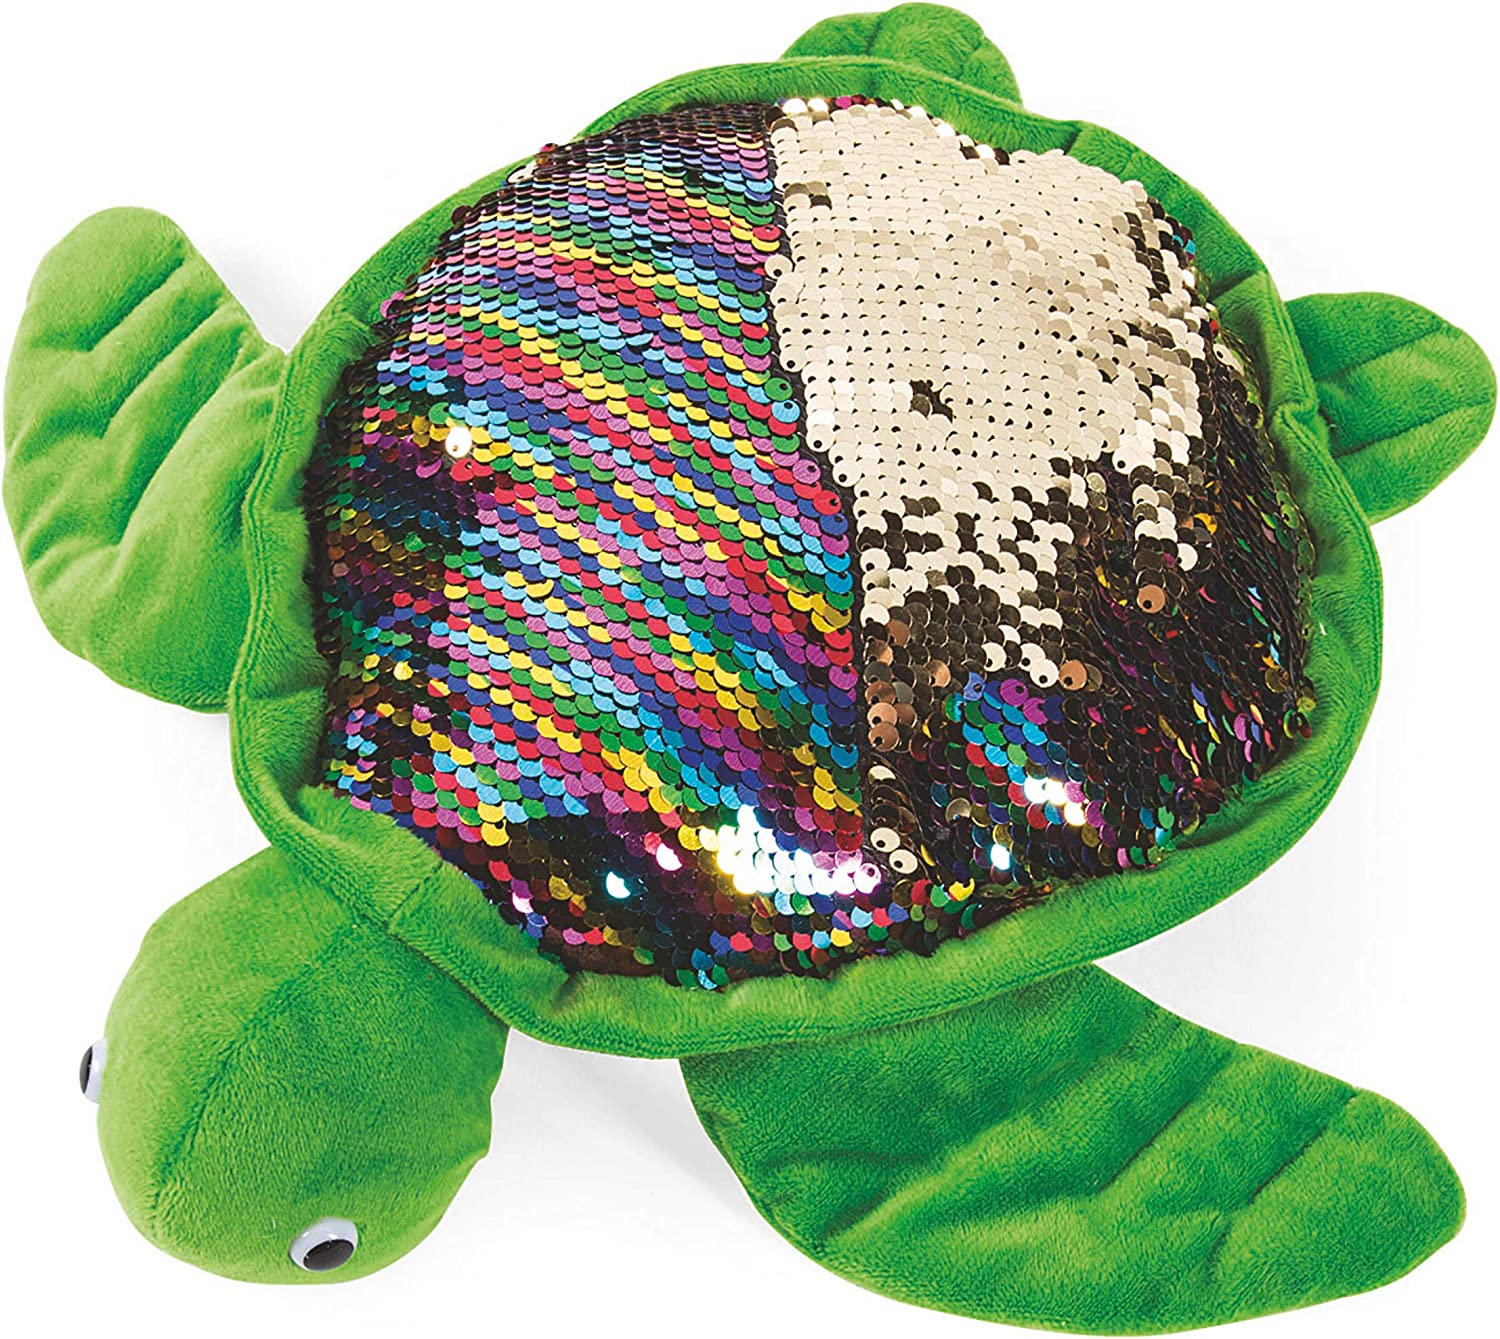 "LMC Products 11"" Turtle Stuffed Animal with Reversible Flipping Sequins - Cute Plush Sea Turtle"